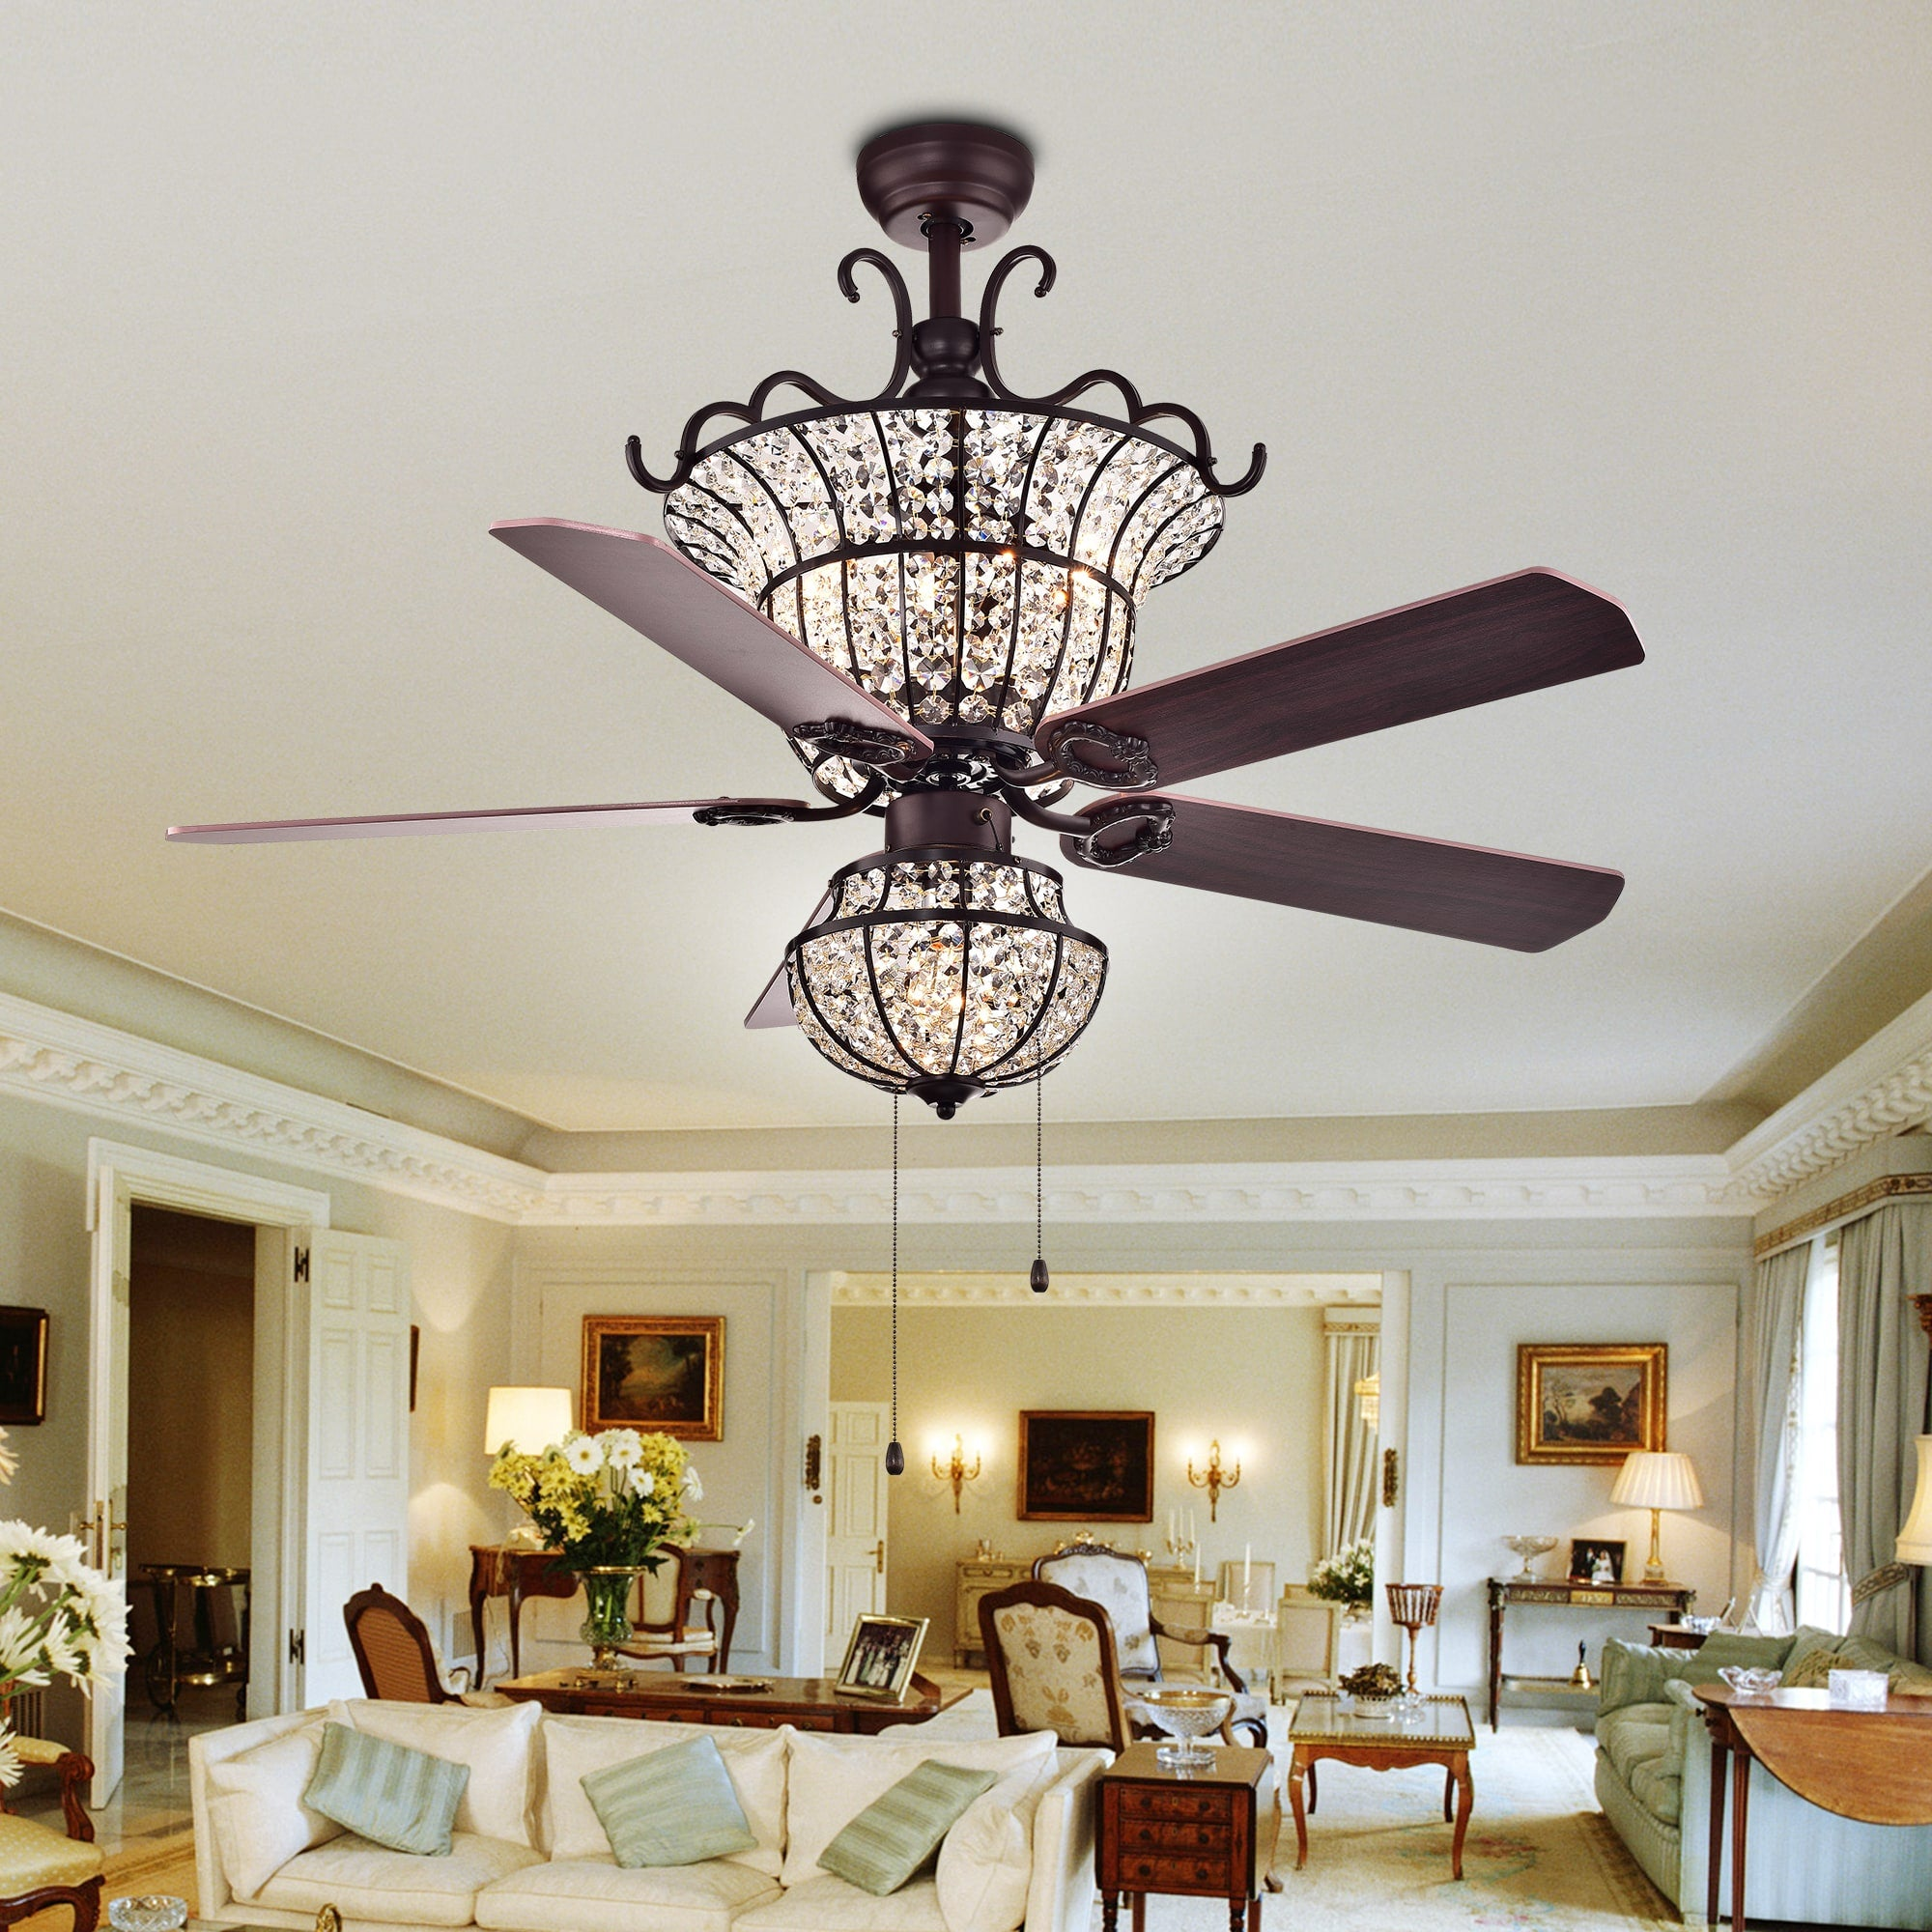 Four-light Crystal Five-Blade 52-Inch Chandelier Ceiling Fan